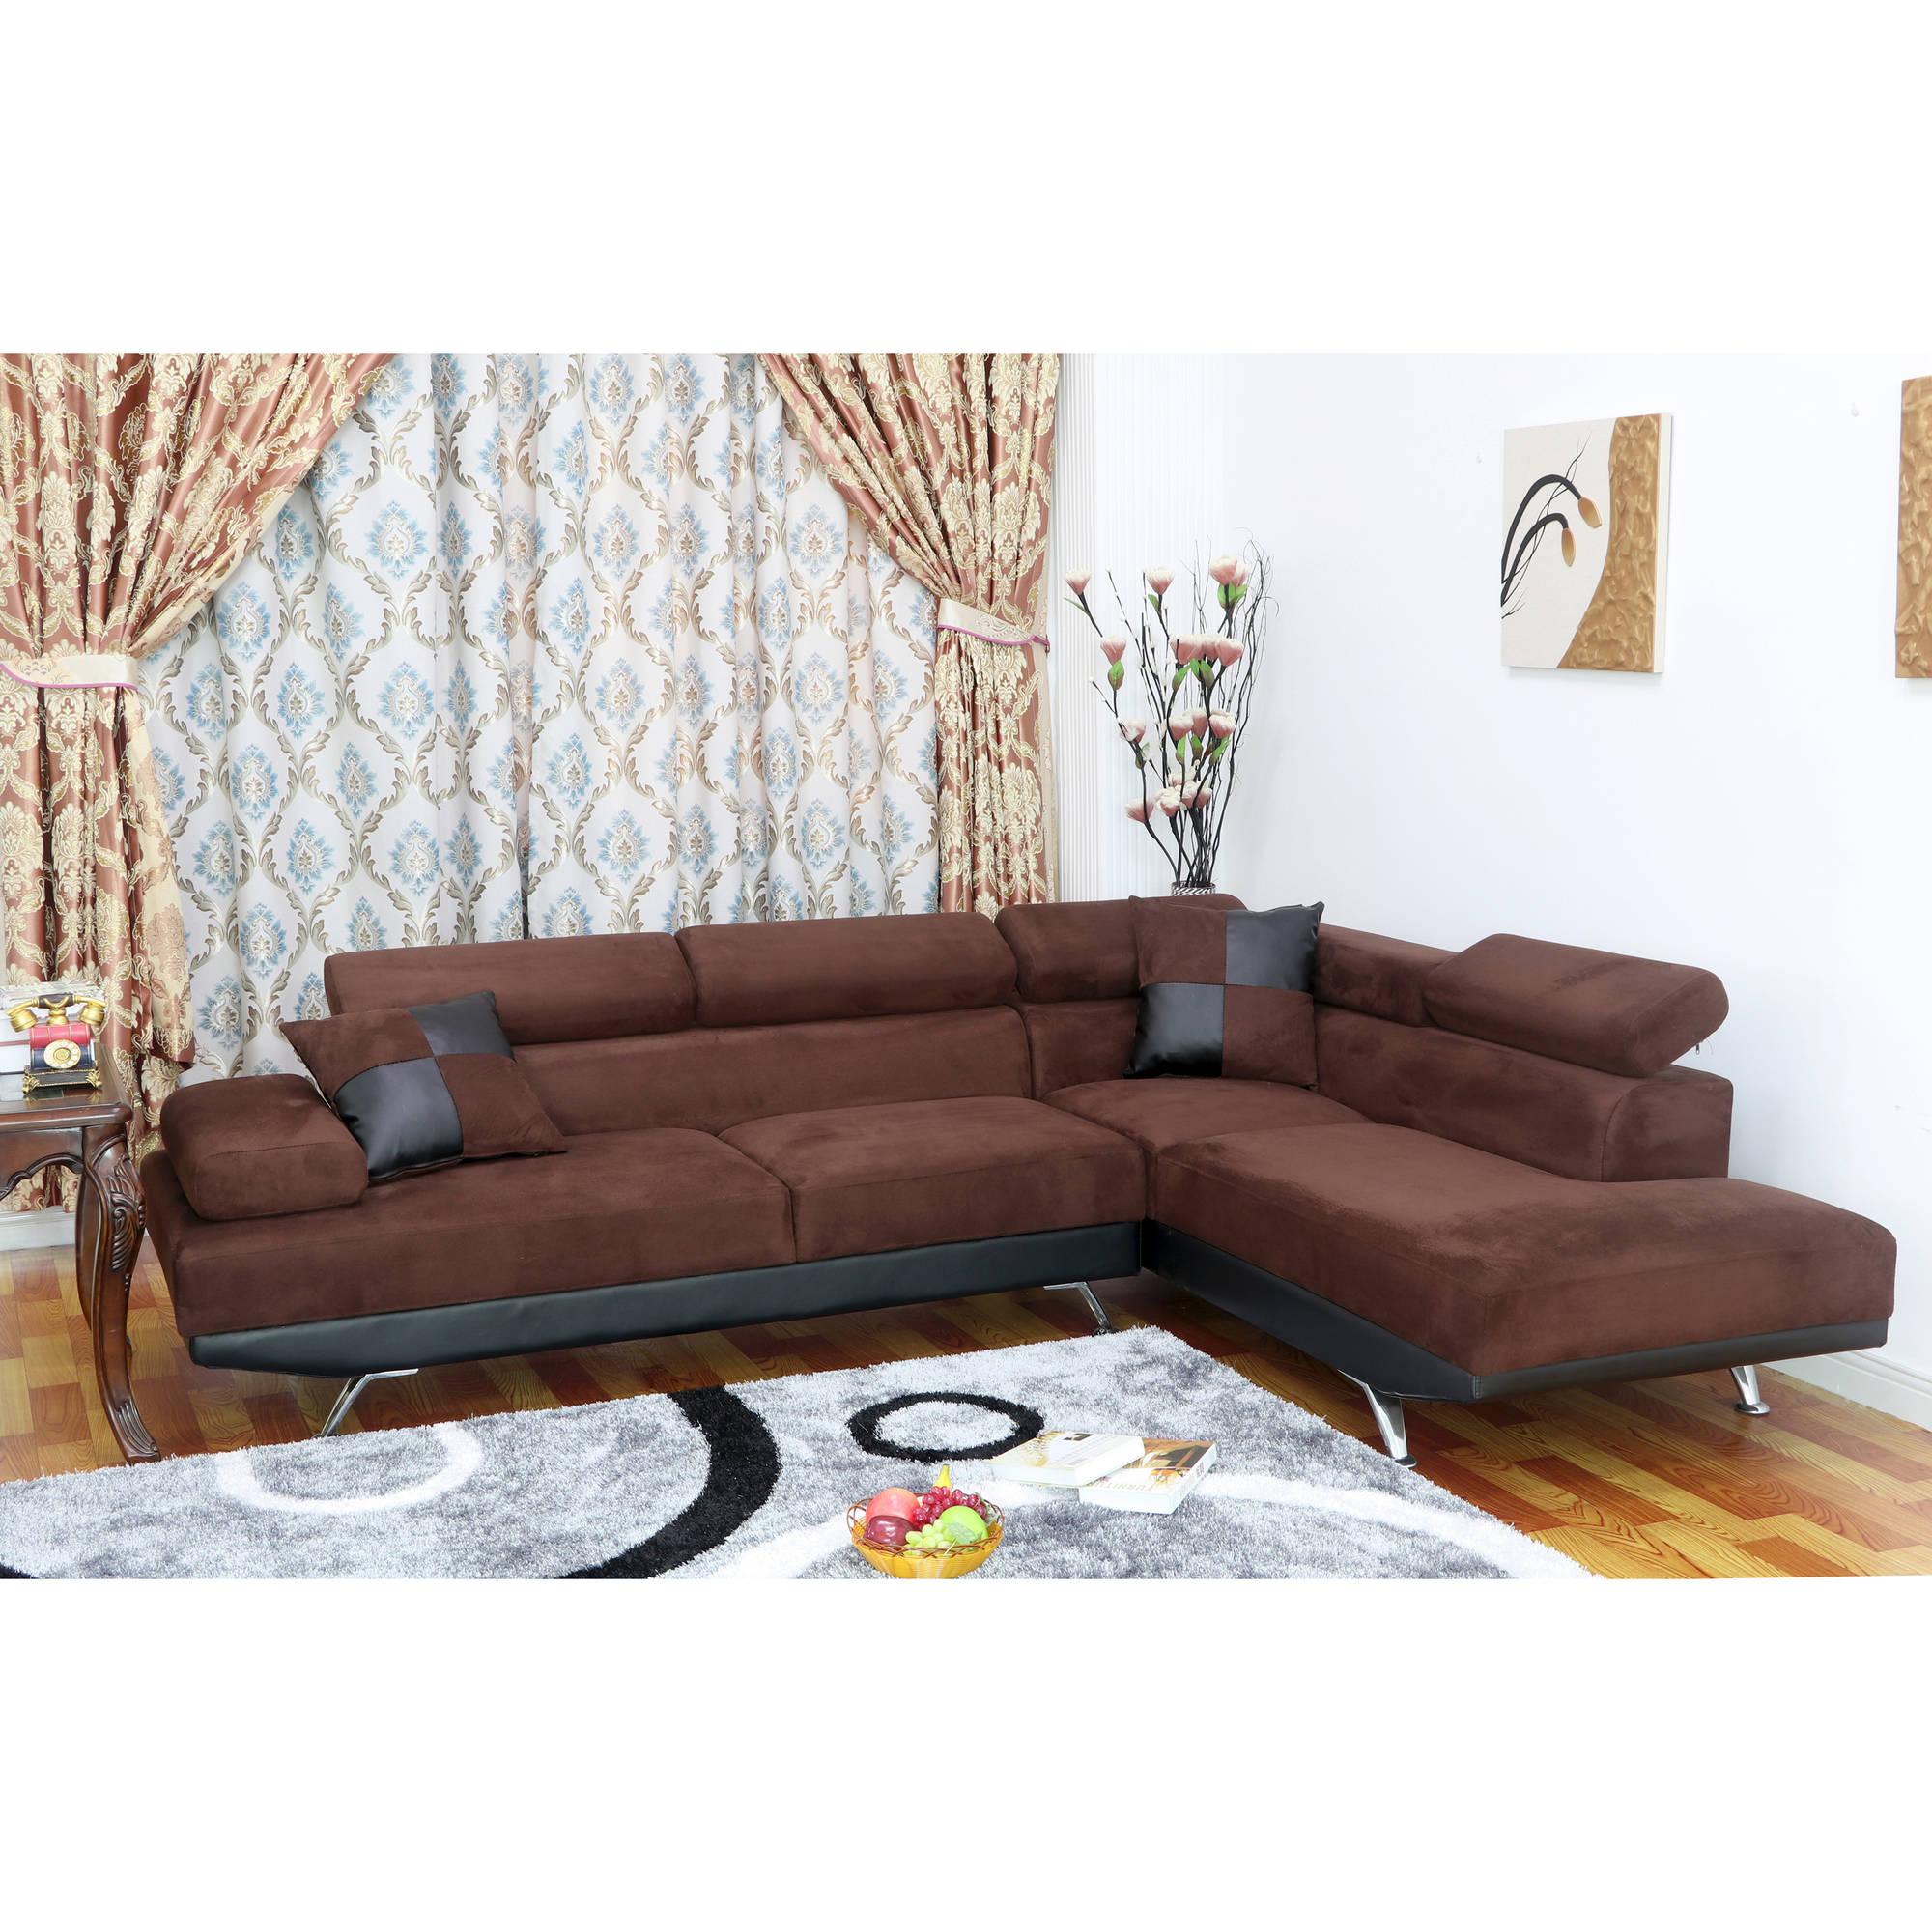 Ufe Sofia 2 Piece Microfiber Modern Right Facing Chaise Sectional Sofa Set Dark Brown